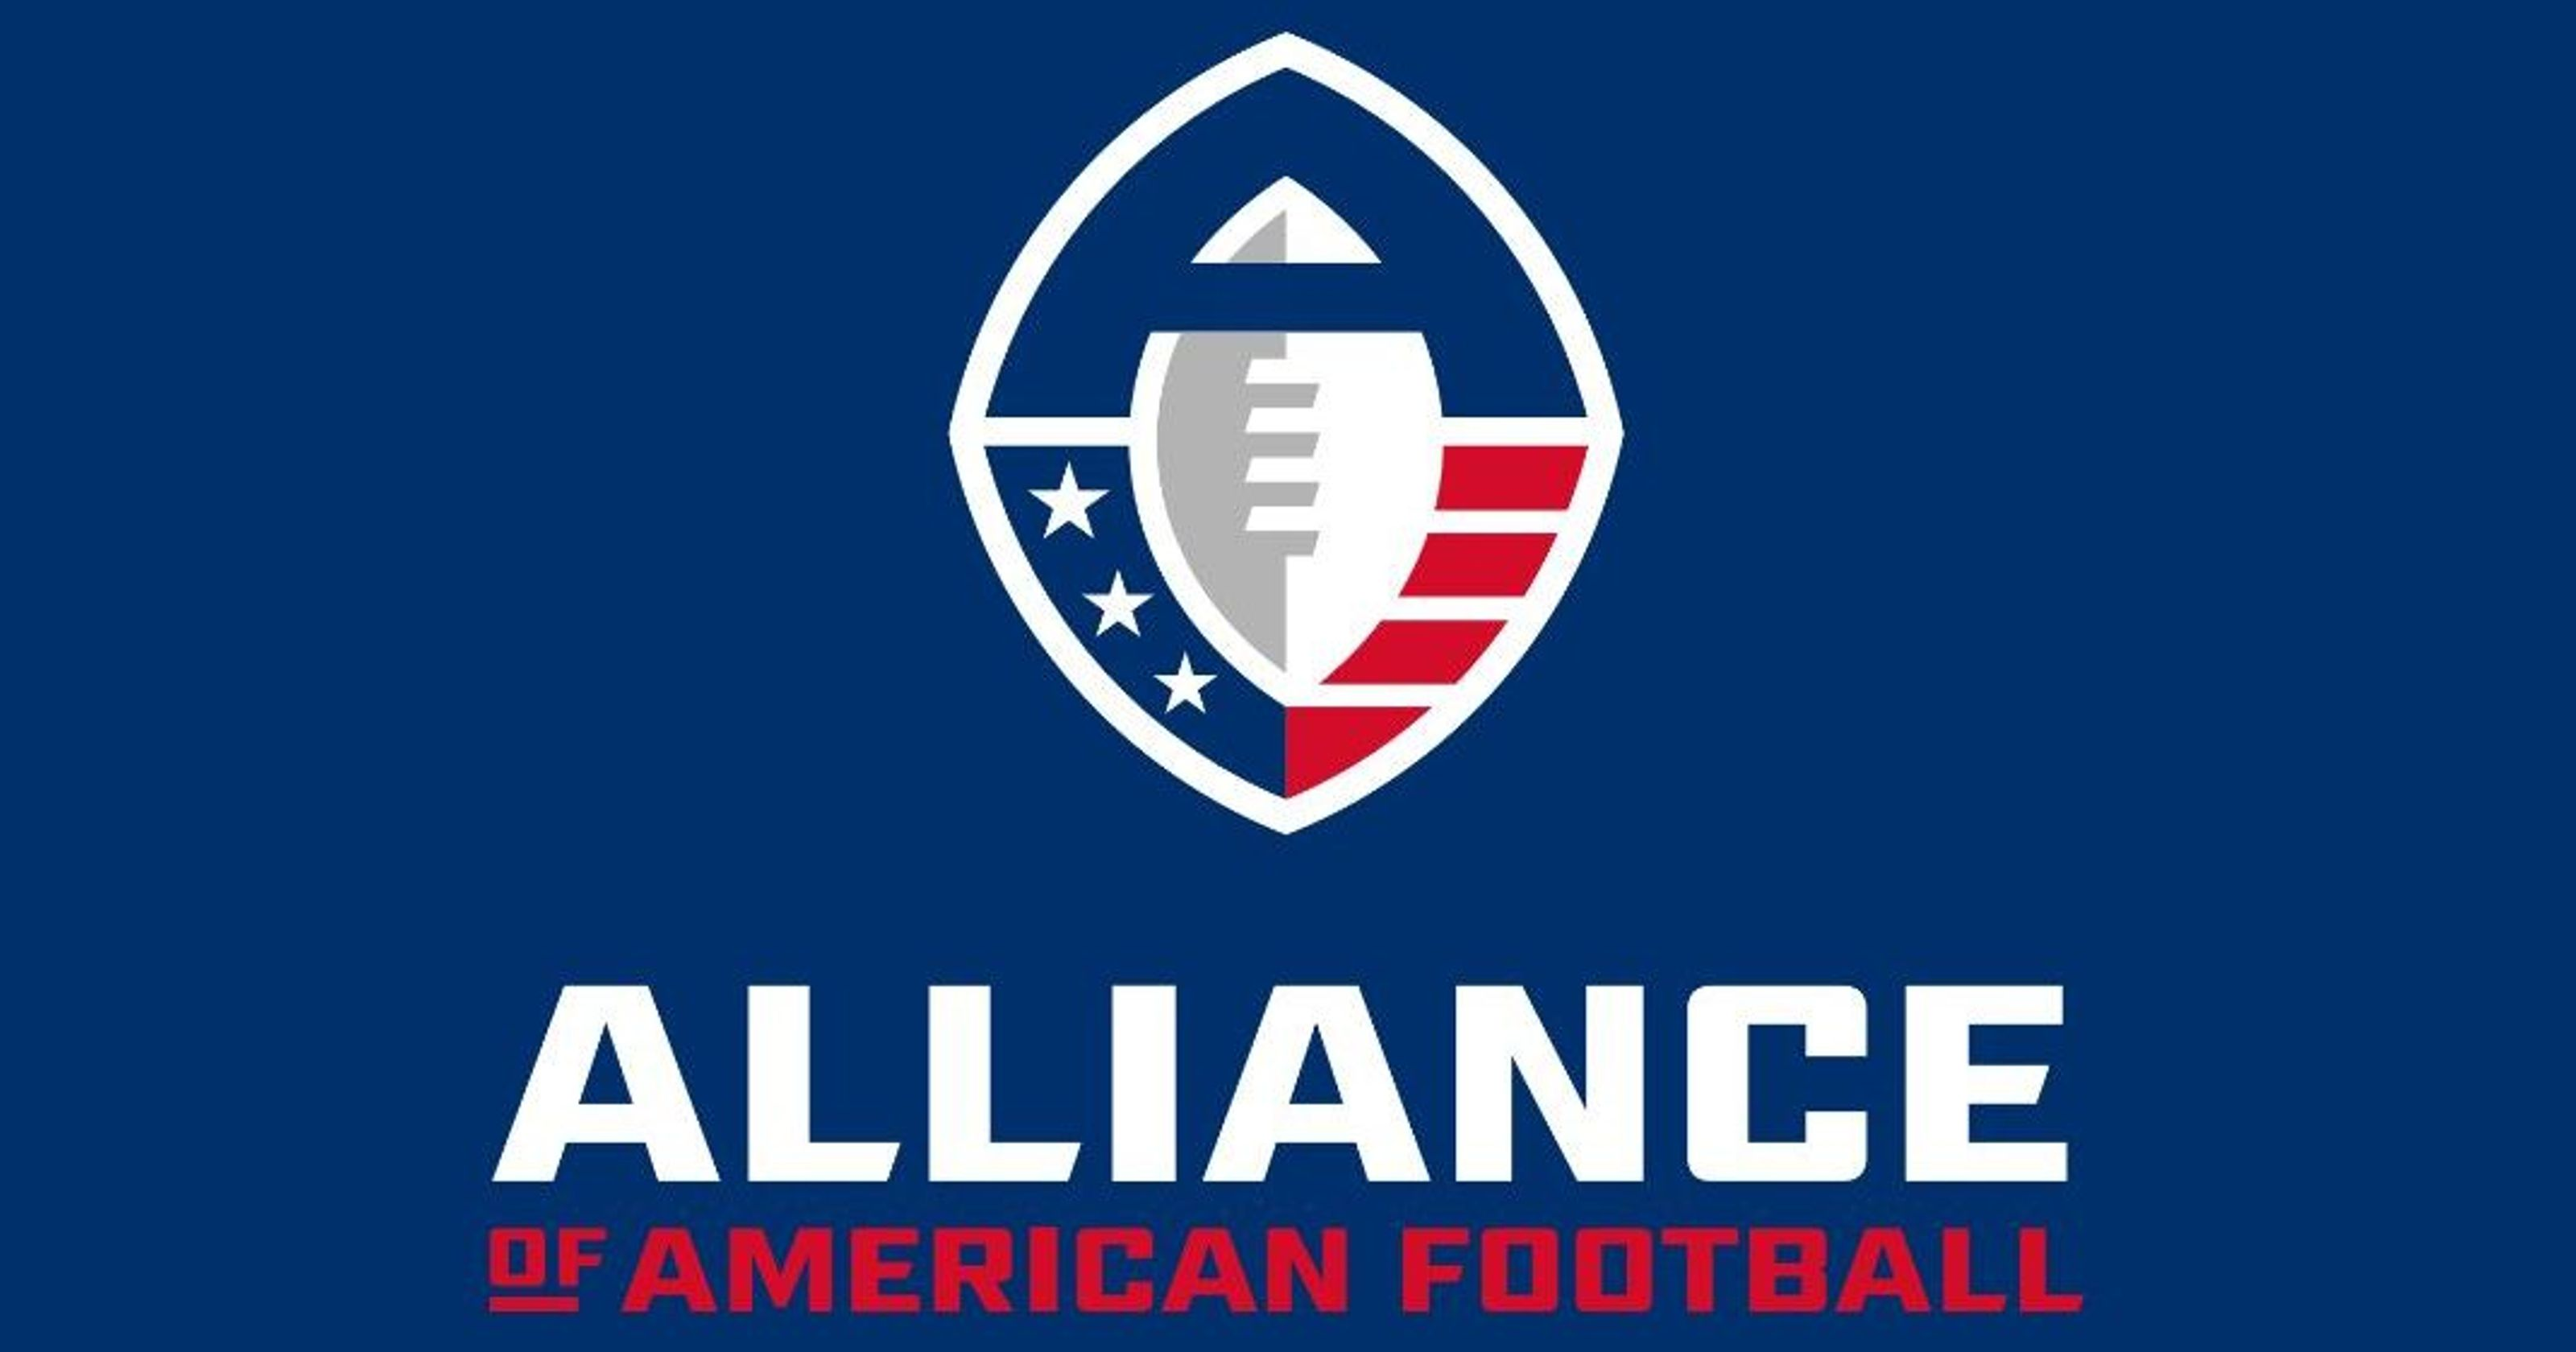 AAF reportedly needed emergency $250 million investment